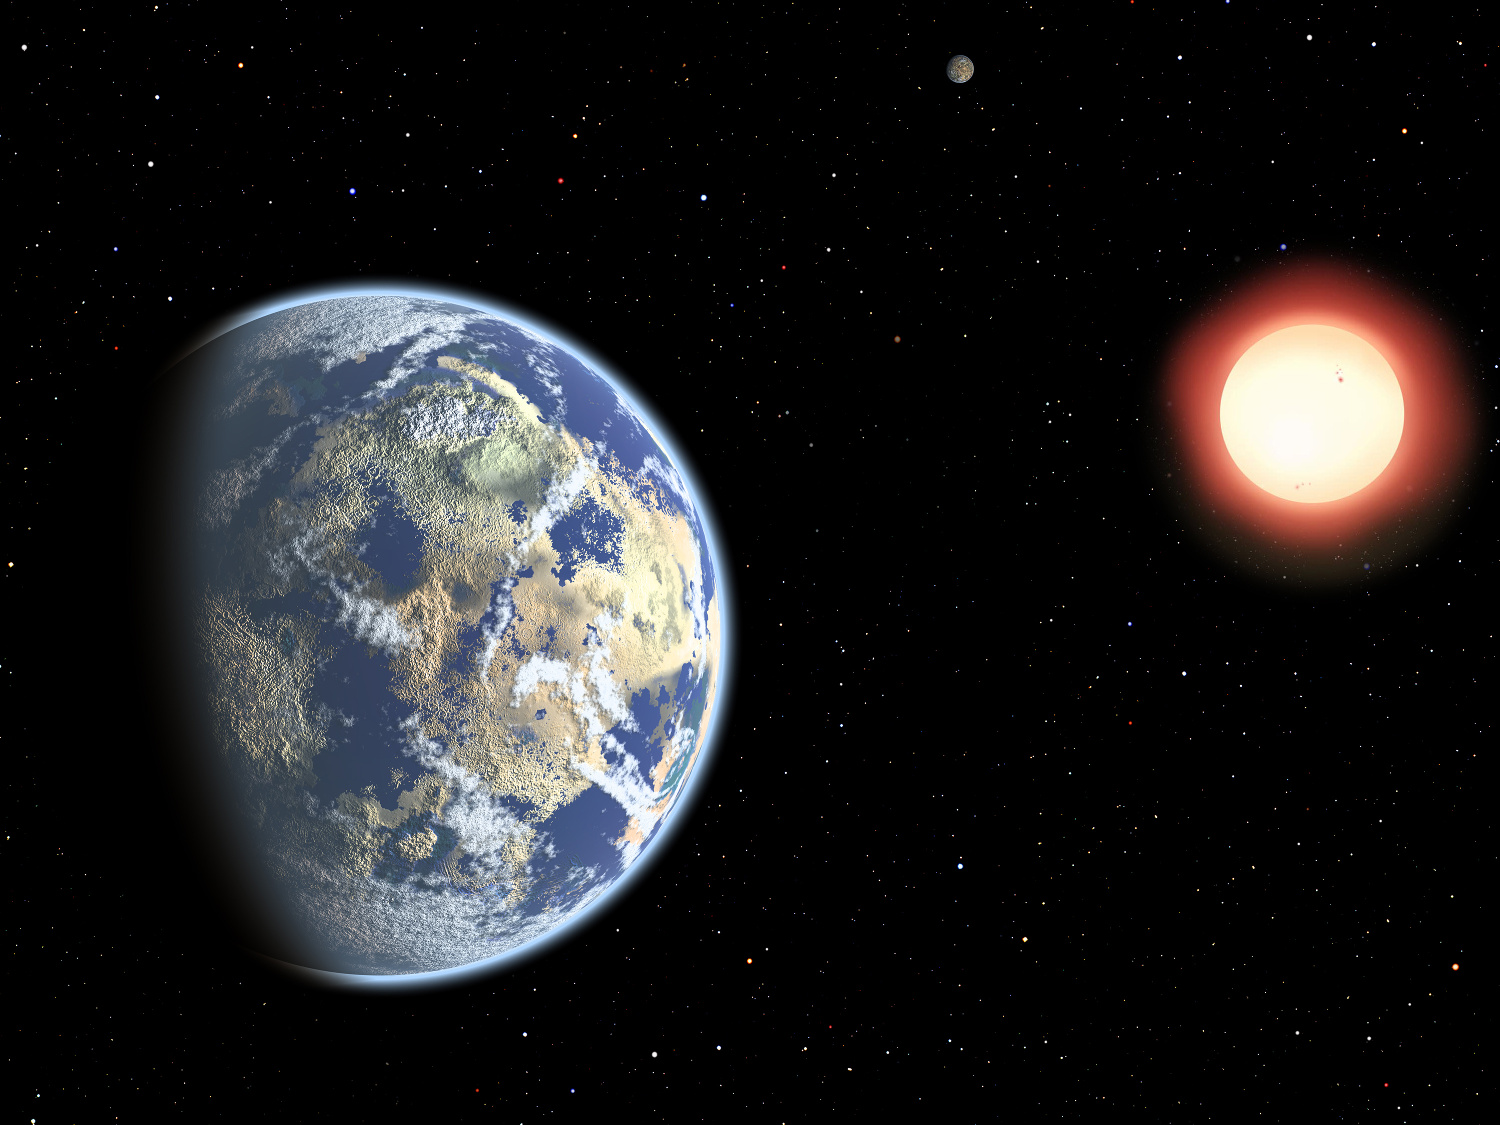 """This artist's conception shows a red dwarf star orbited by a pair of habitable planets. Since red dwarf stars live so long, the probability of cosmic life grows over time. As a result, Earthly life might be considered """"premature."""" Image credit: Christine Pulliam (CfA)."""